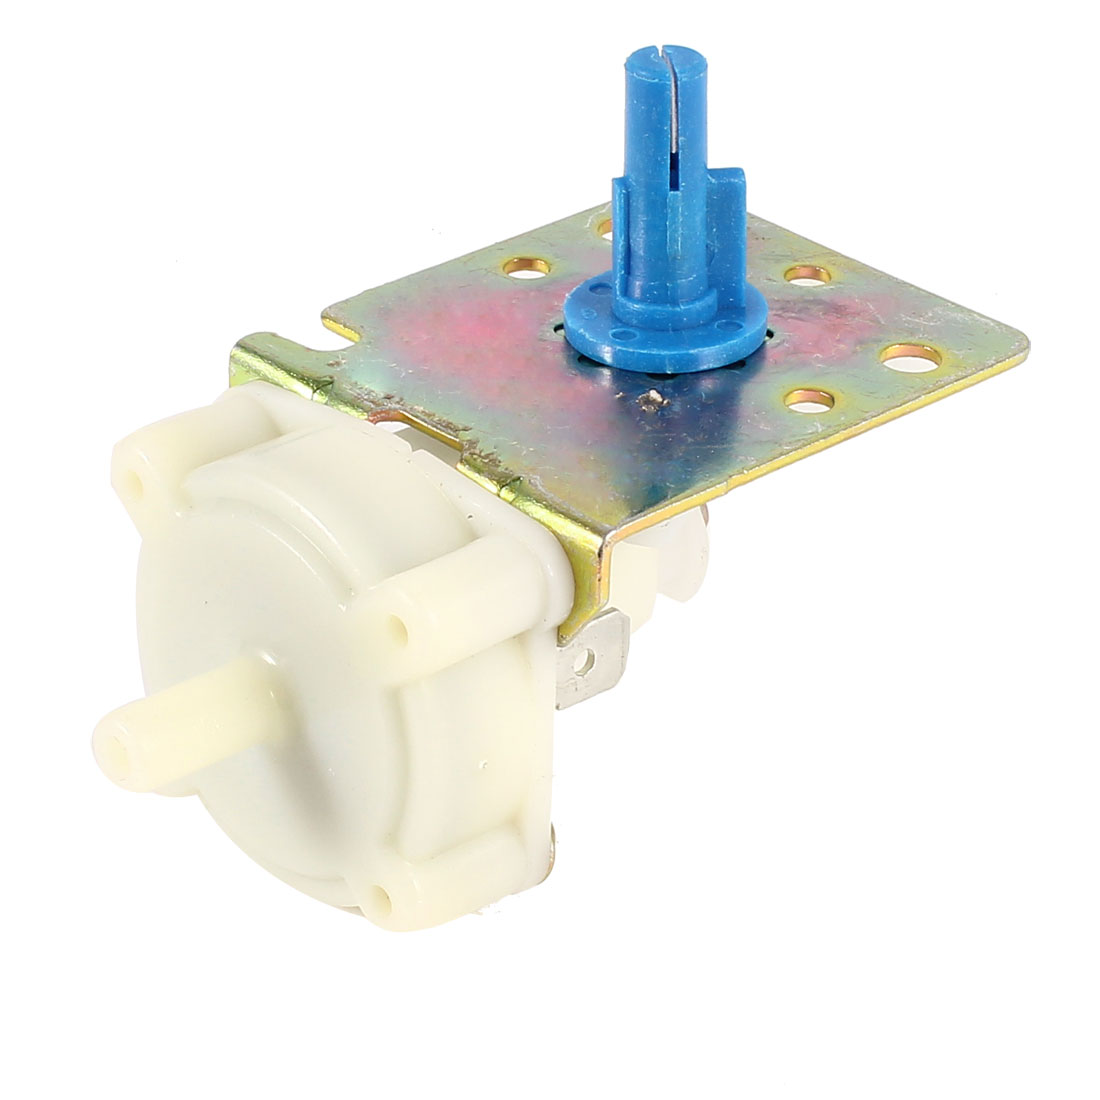 KD4-10B 4 Positions Water Level Switch Replacement for Washing Machine